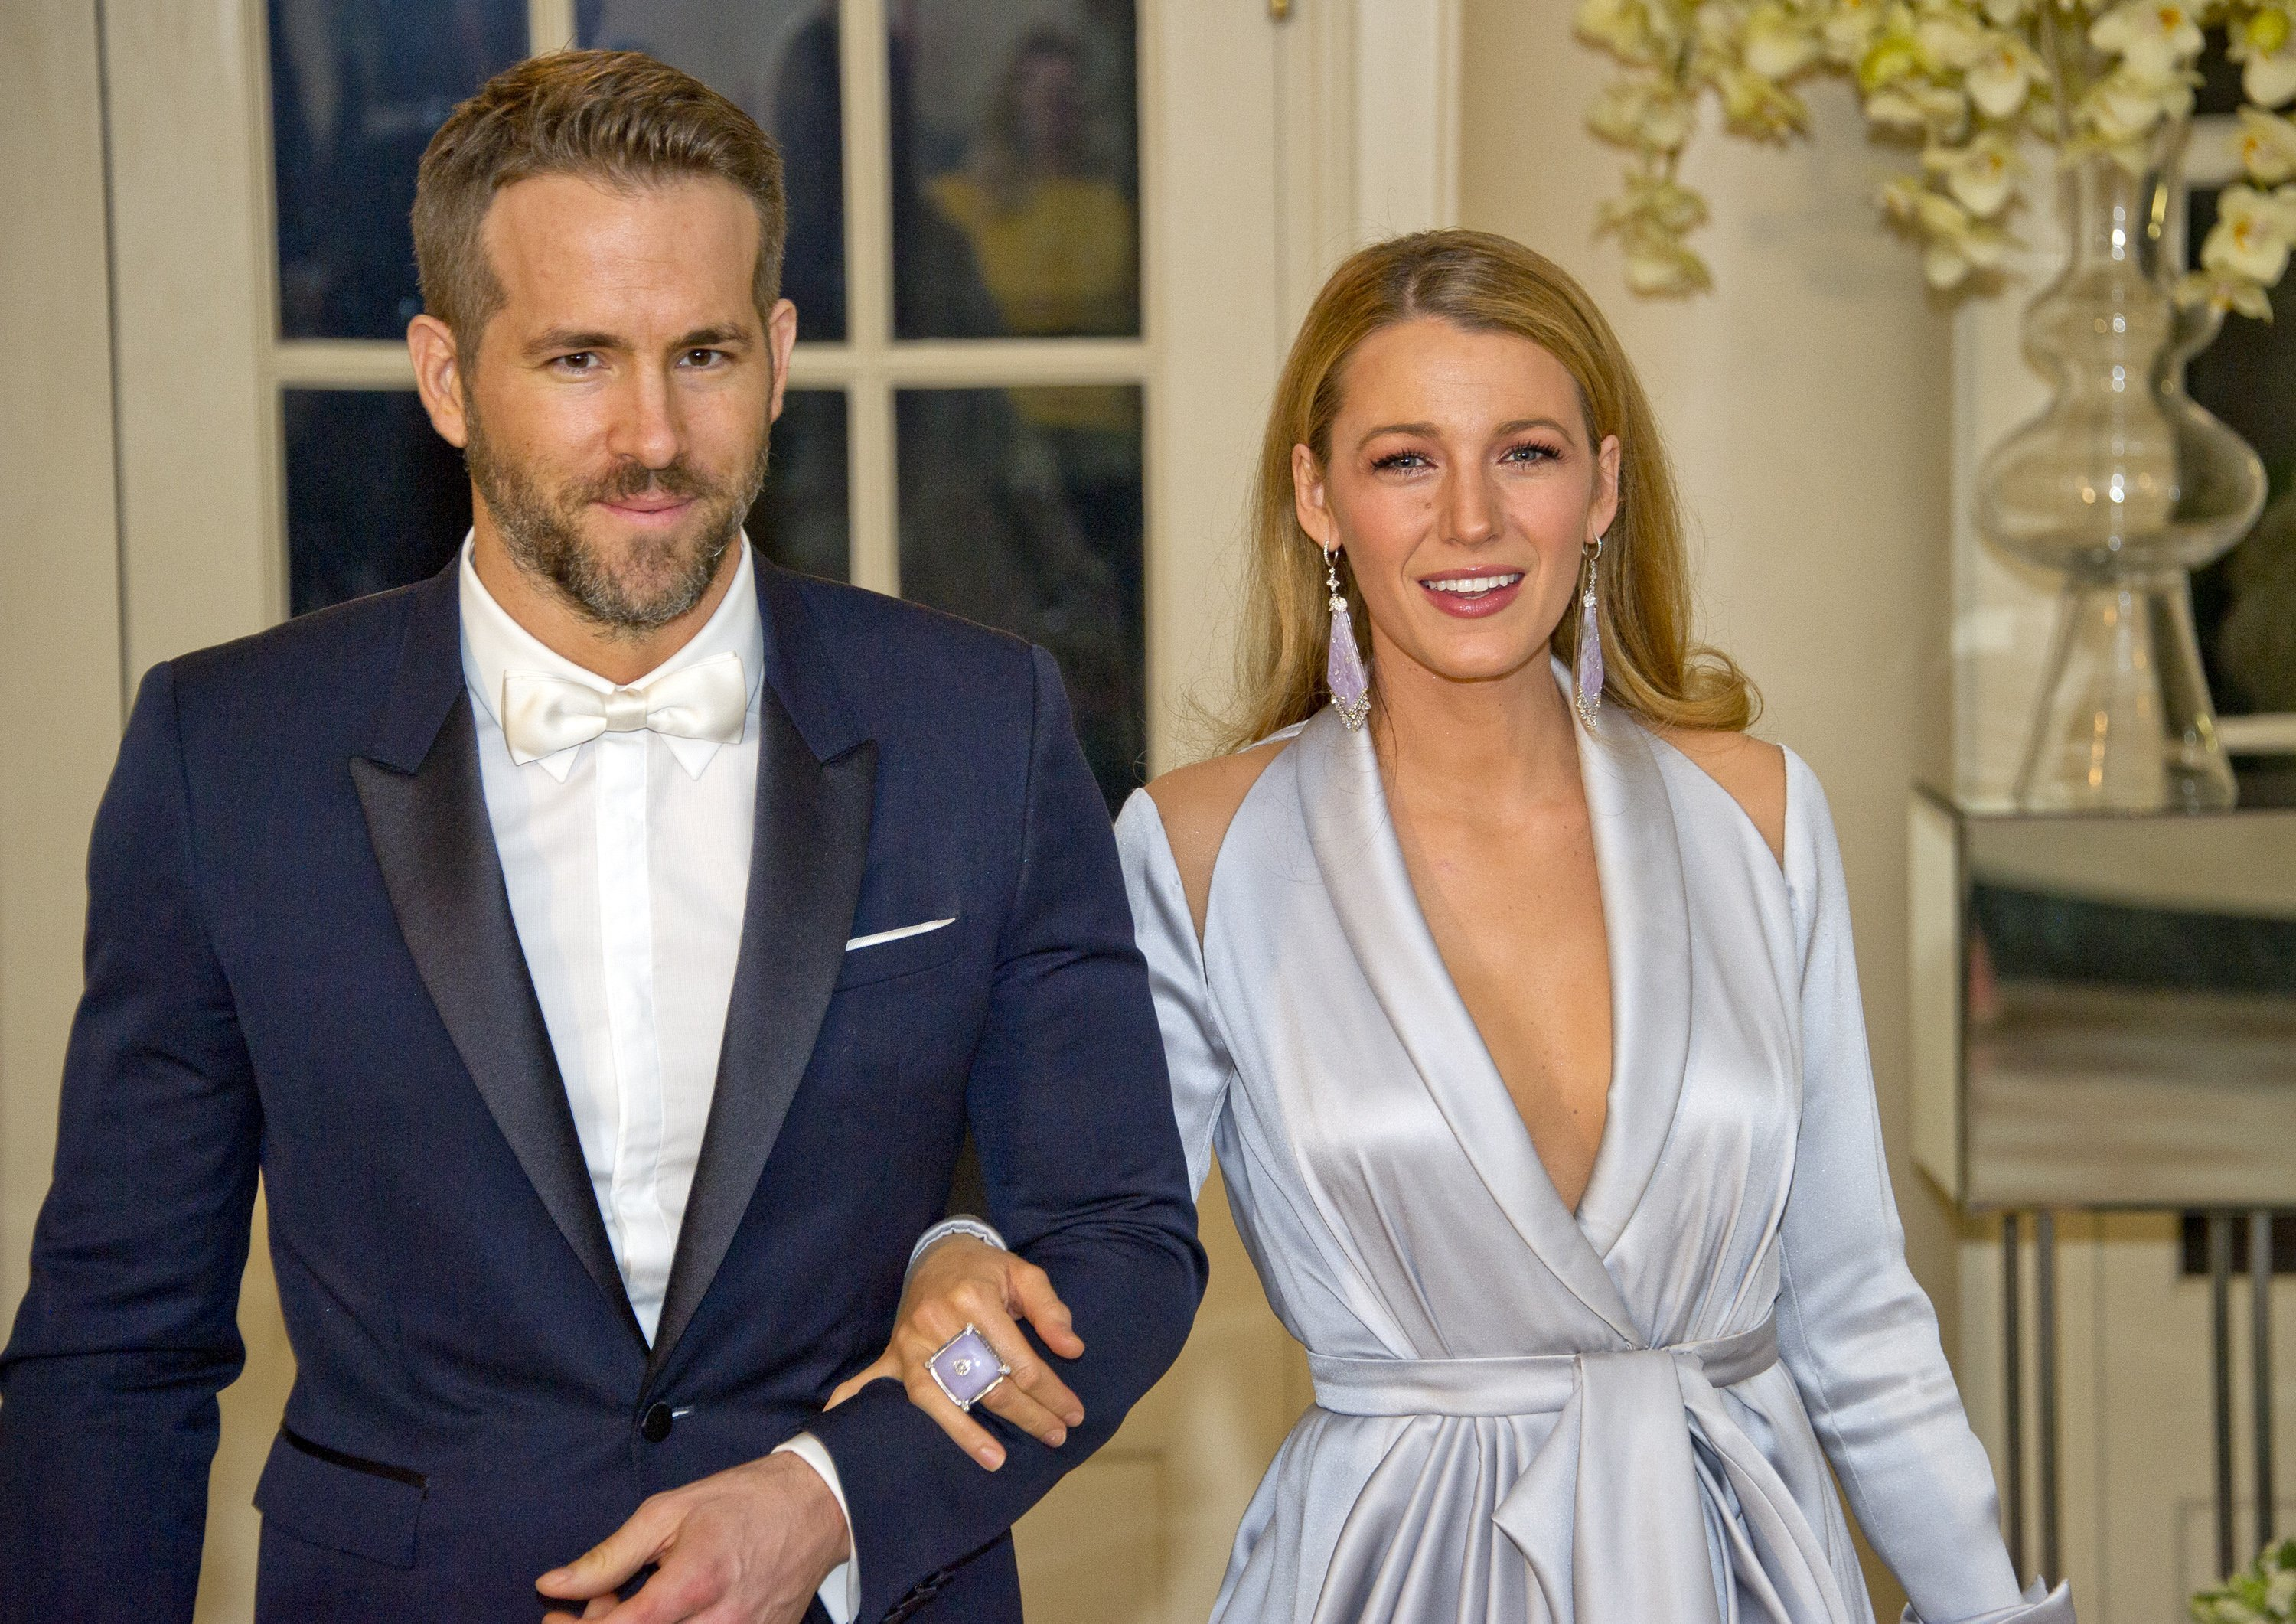 Ryan Reynolds and Blake Lively arrive for the State Dinner at the White House March 10, 2016. | Source: Getty Images